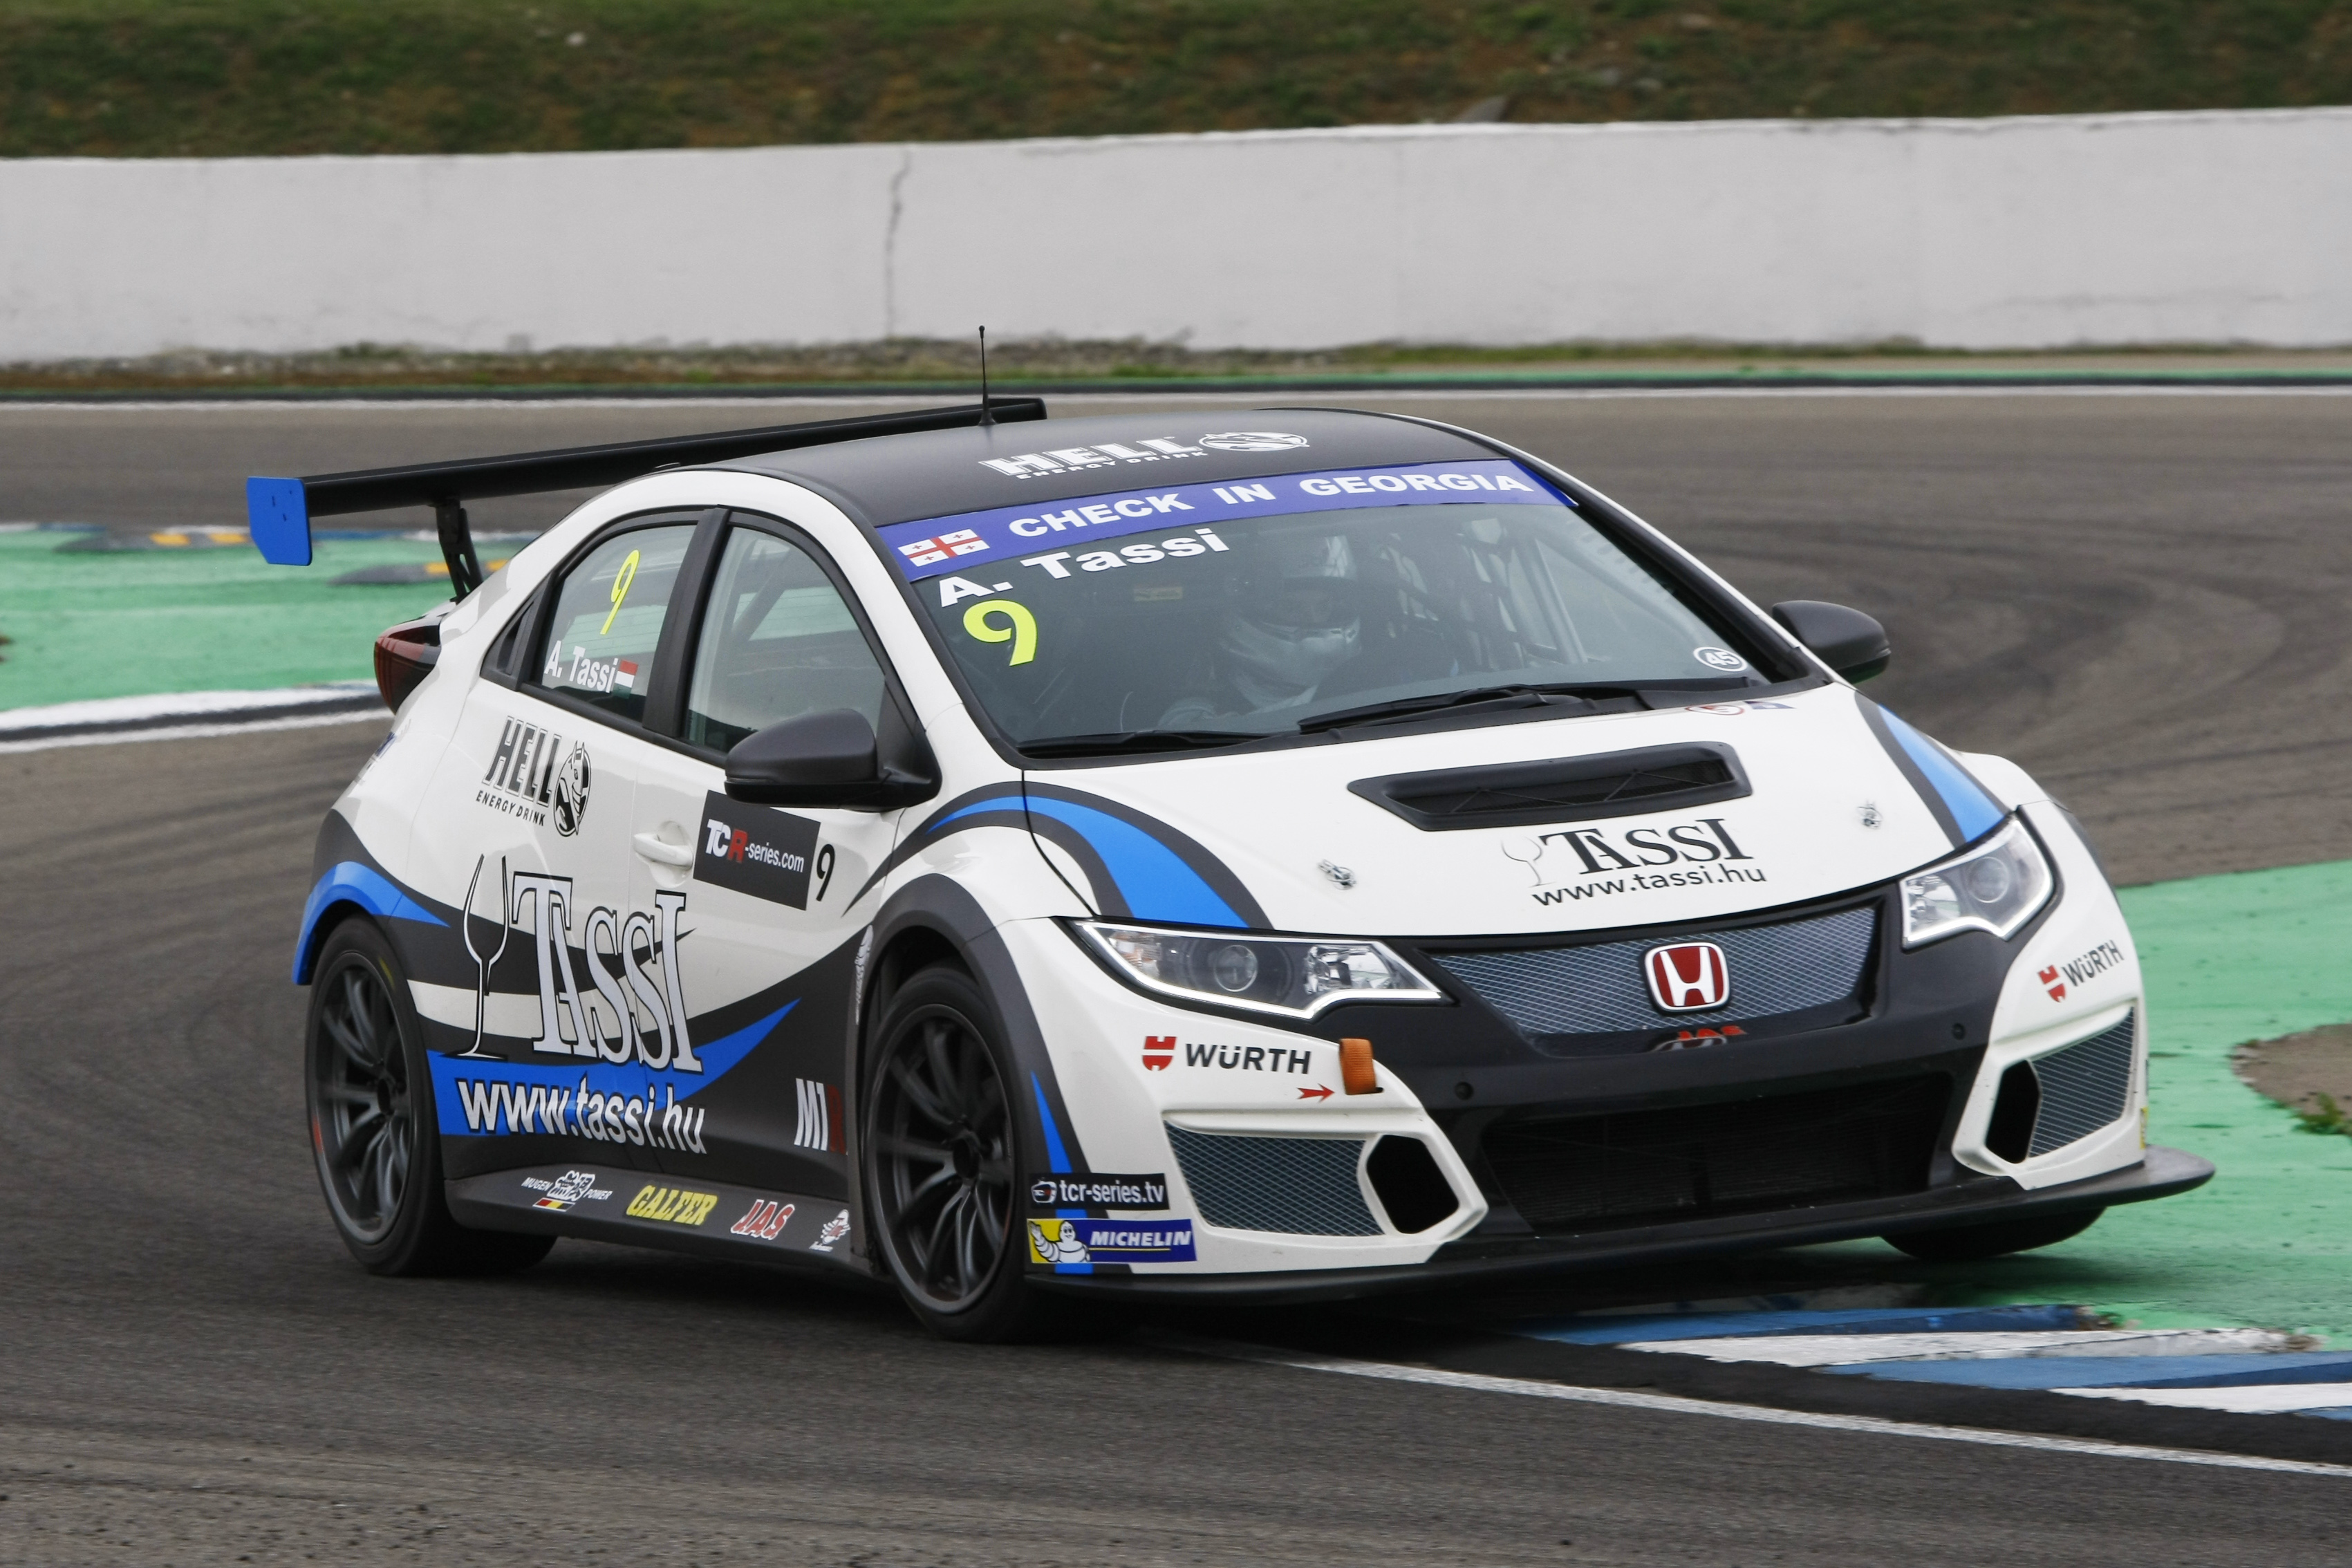 Honda Civic Type-R TCR